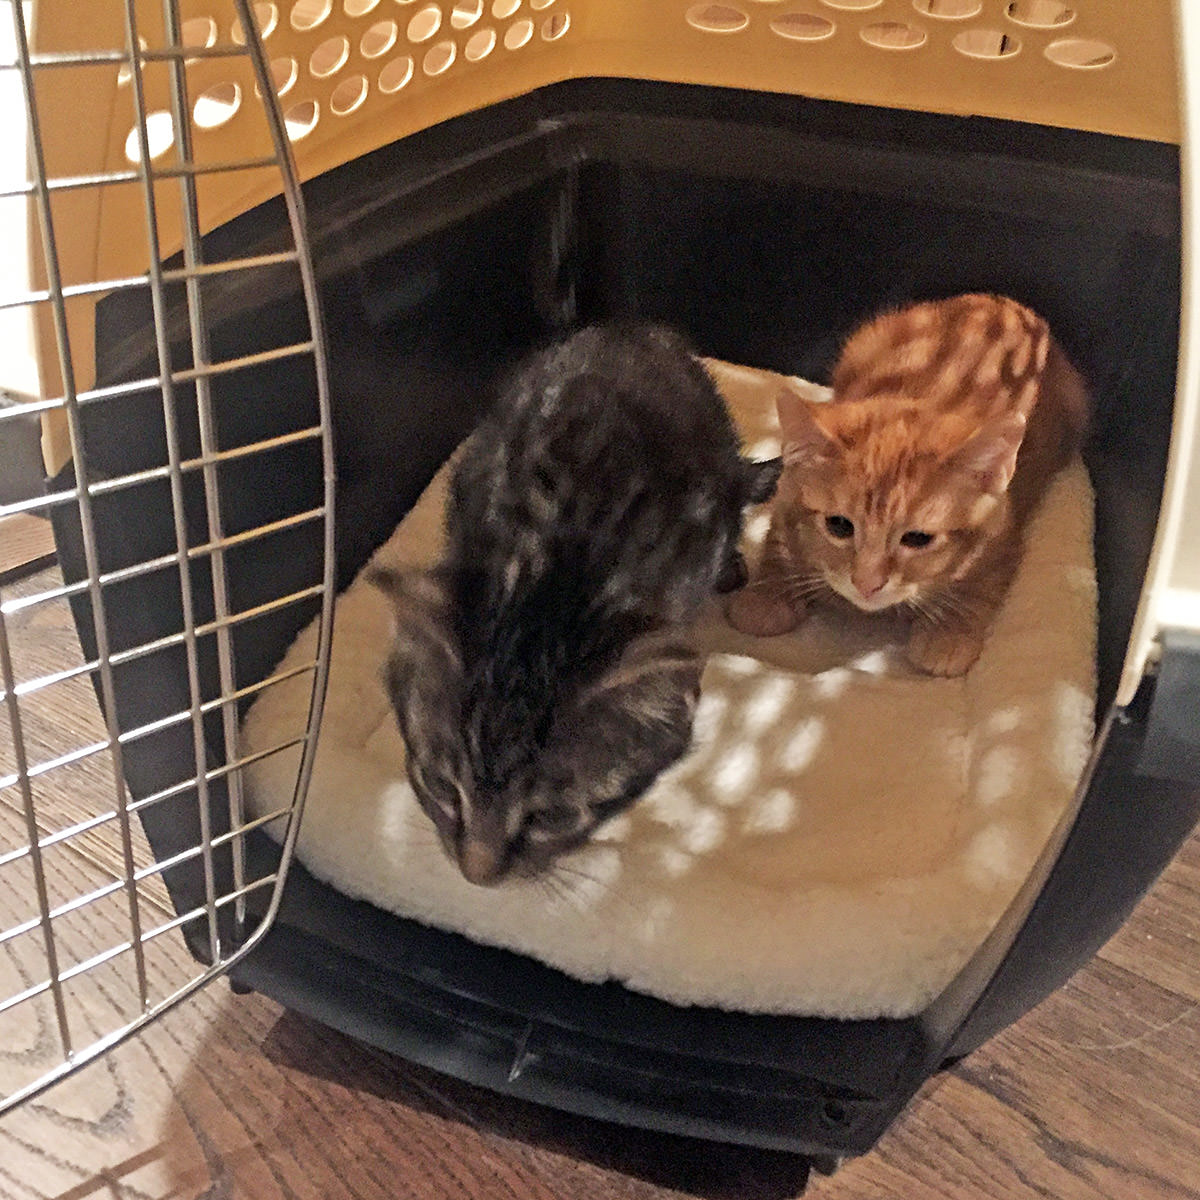 Jenny & Jake as baby kittens hesitantly looking out of the kitty carrier they were in.